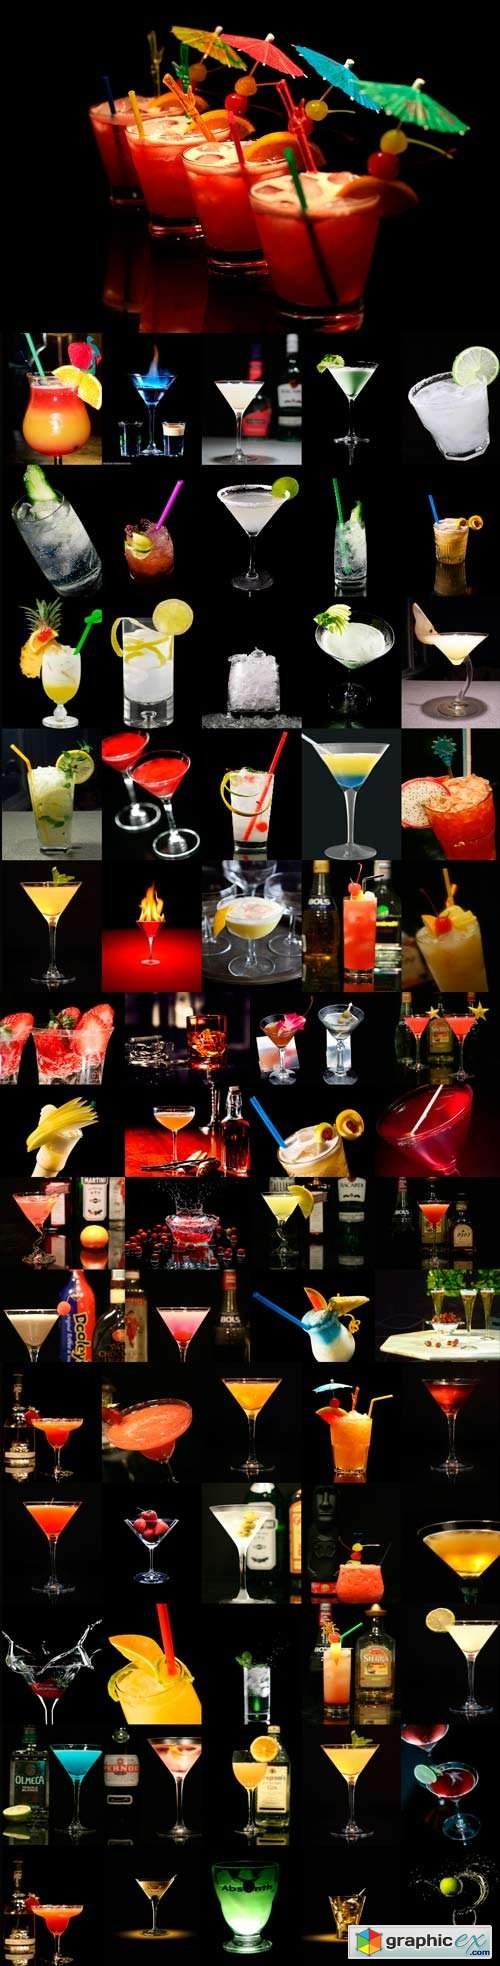 Multi-colored cocktails on a dark background - 3